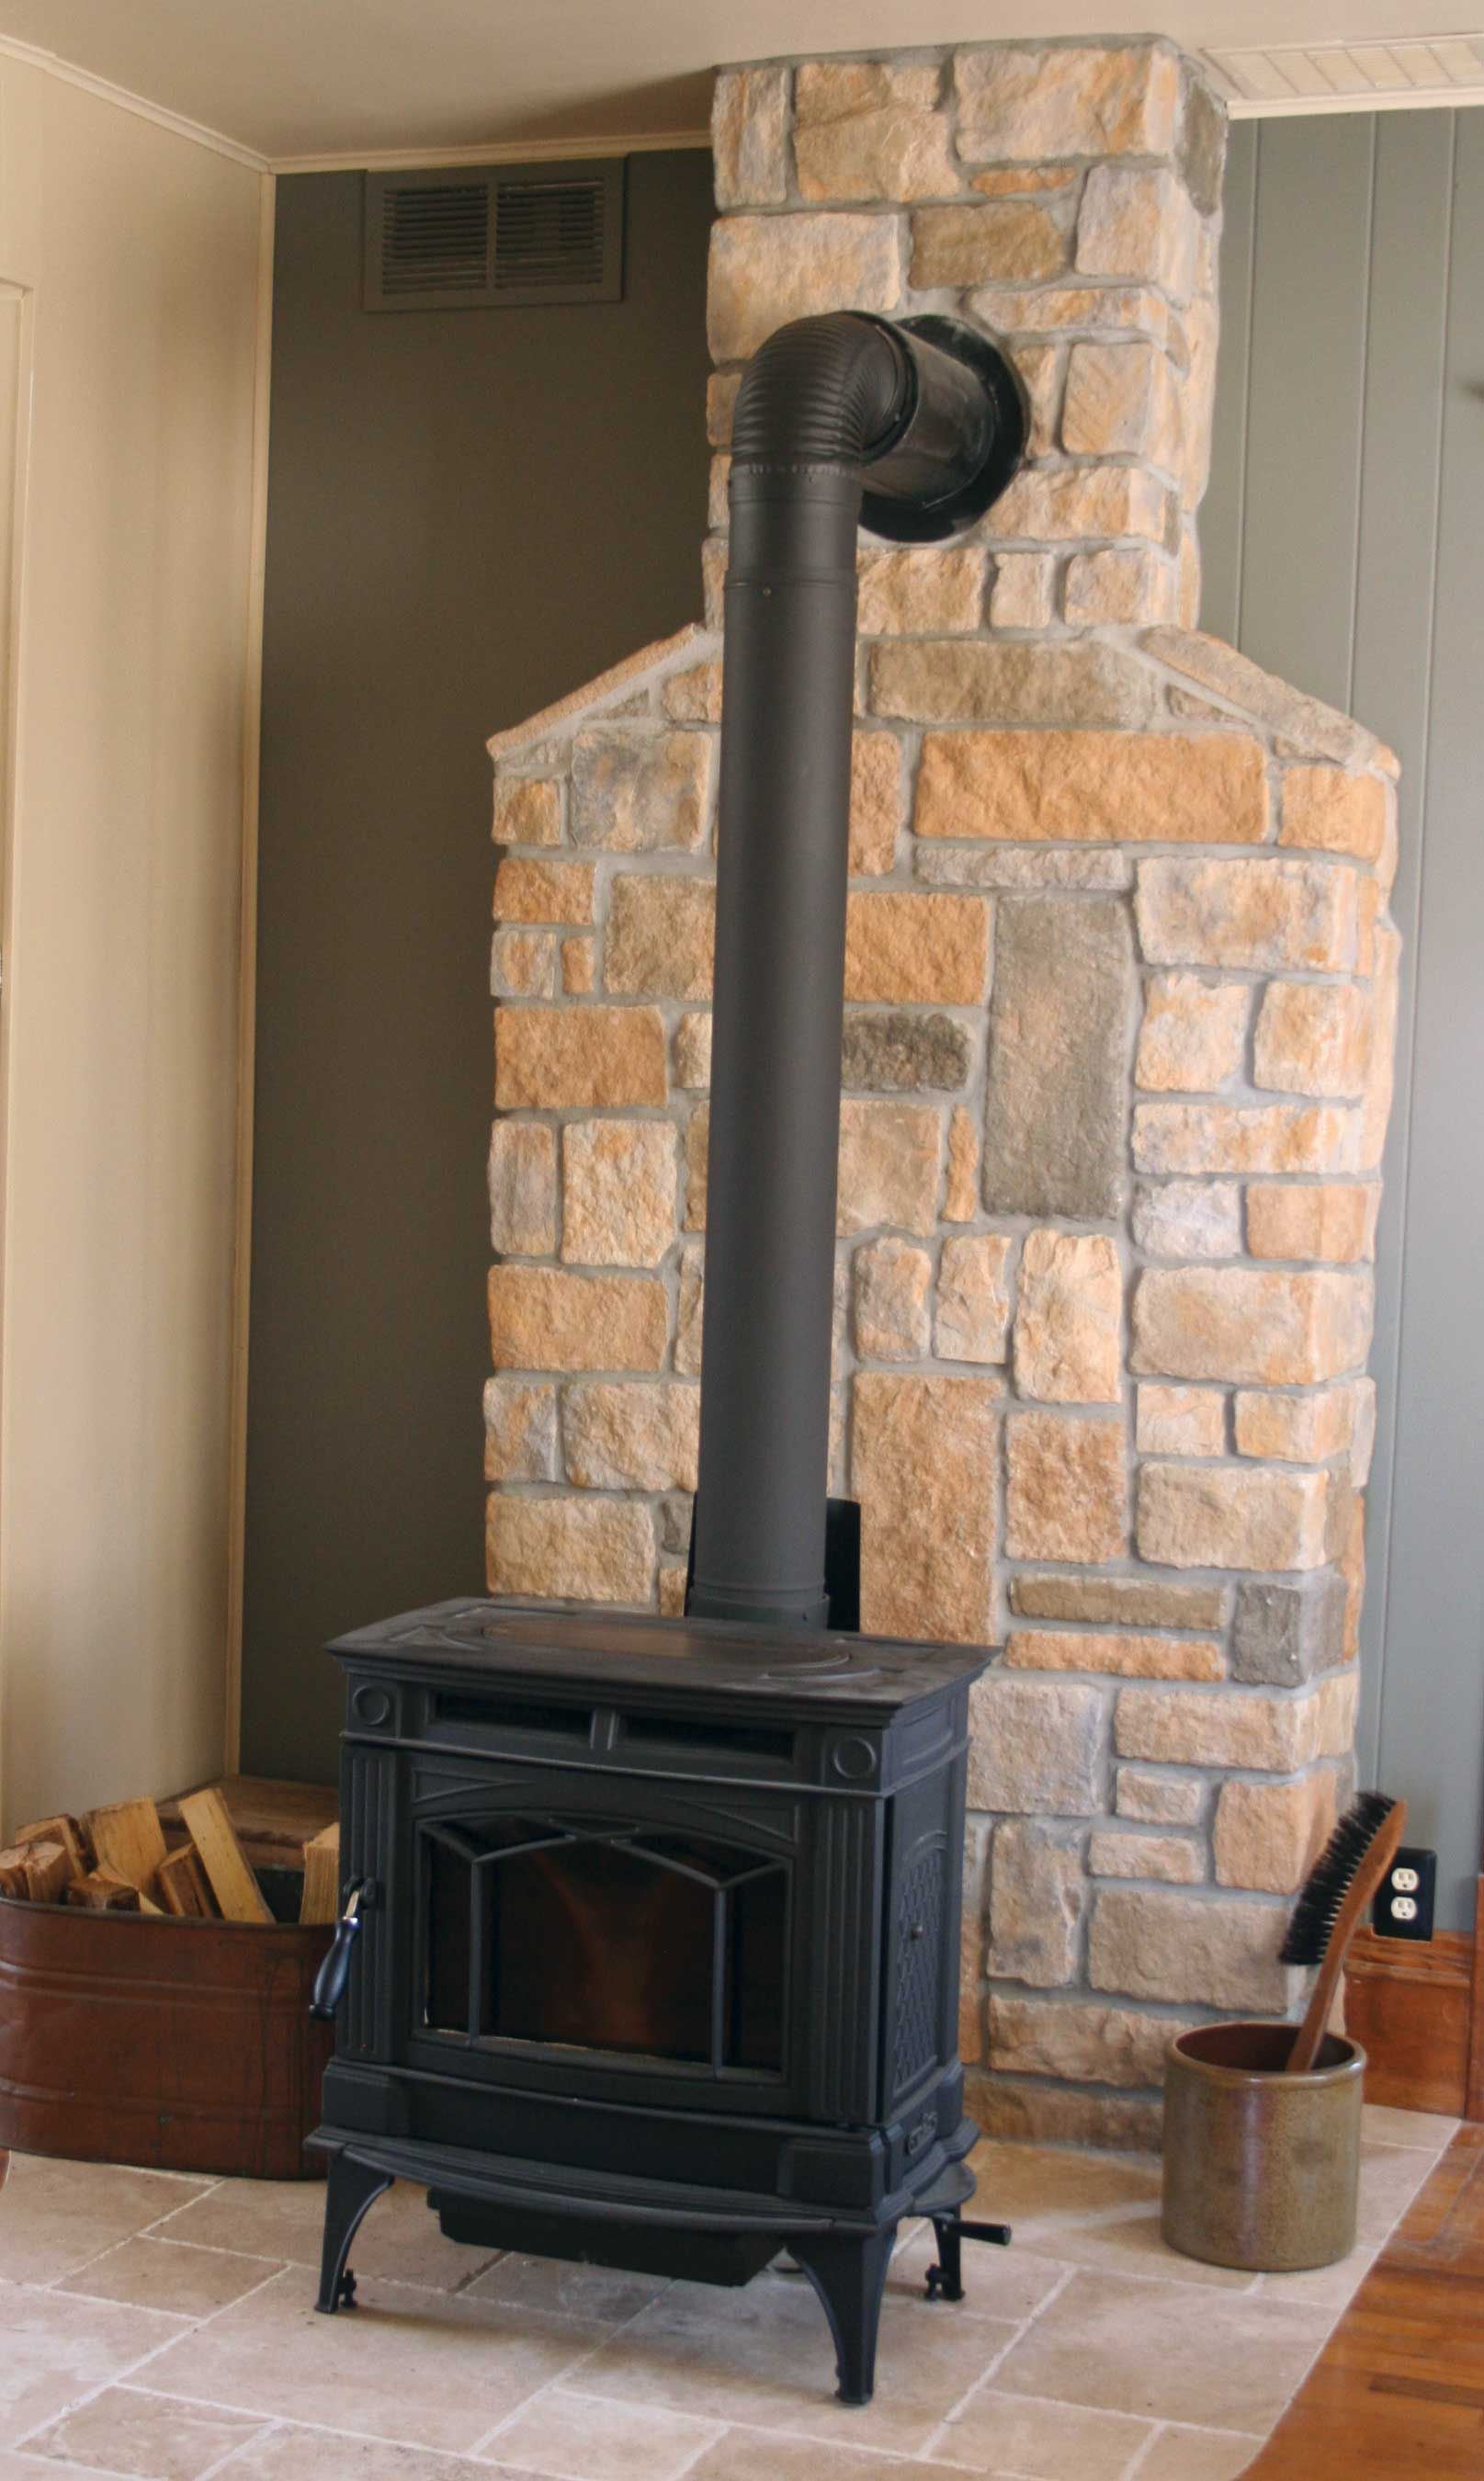 choosing a wood burning stove for your home tools grit